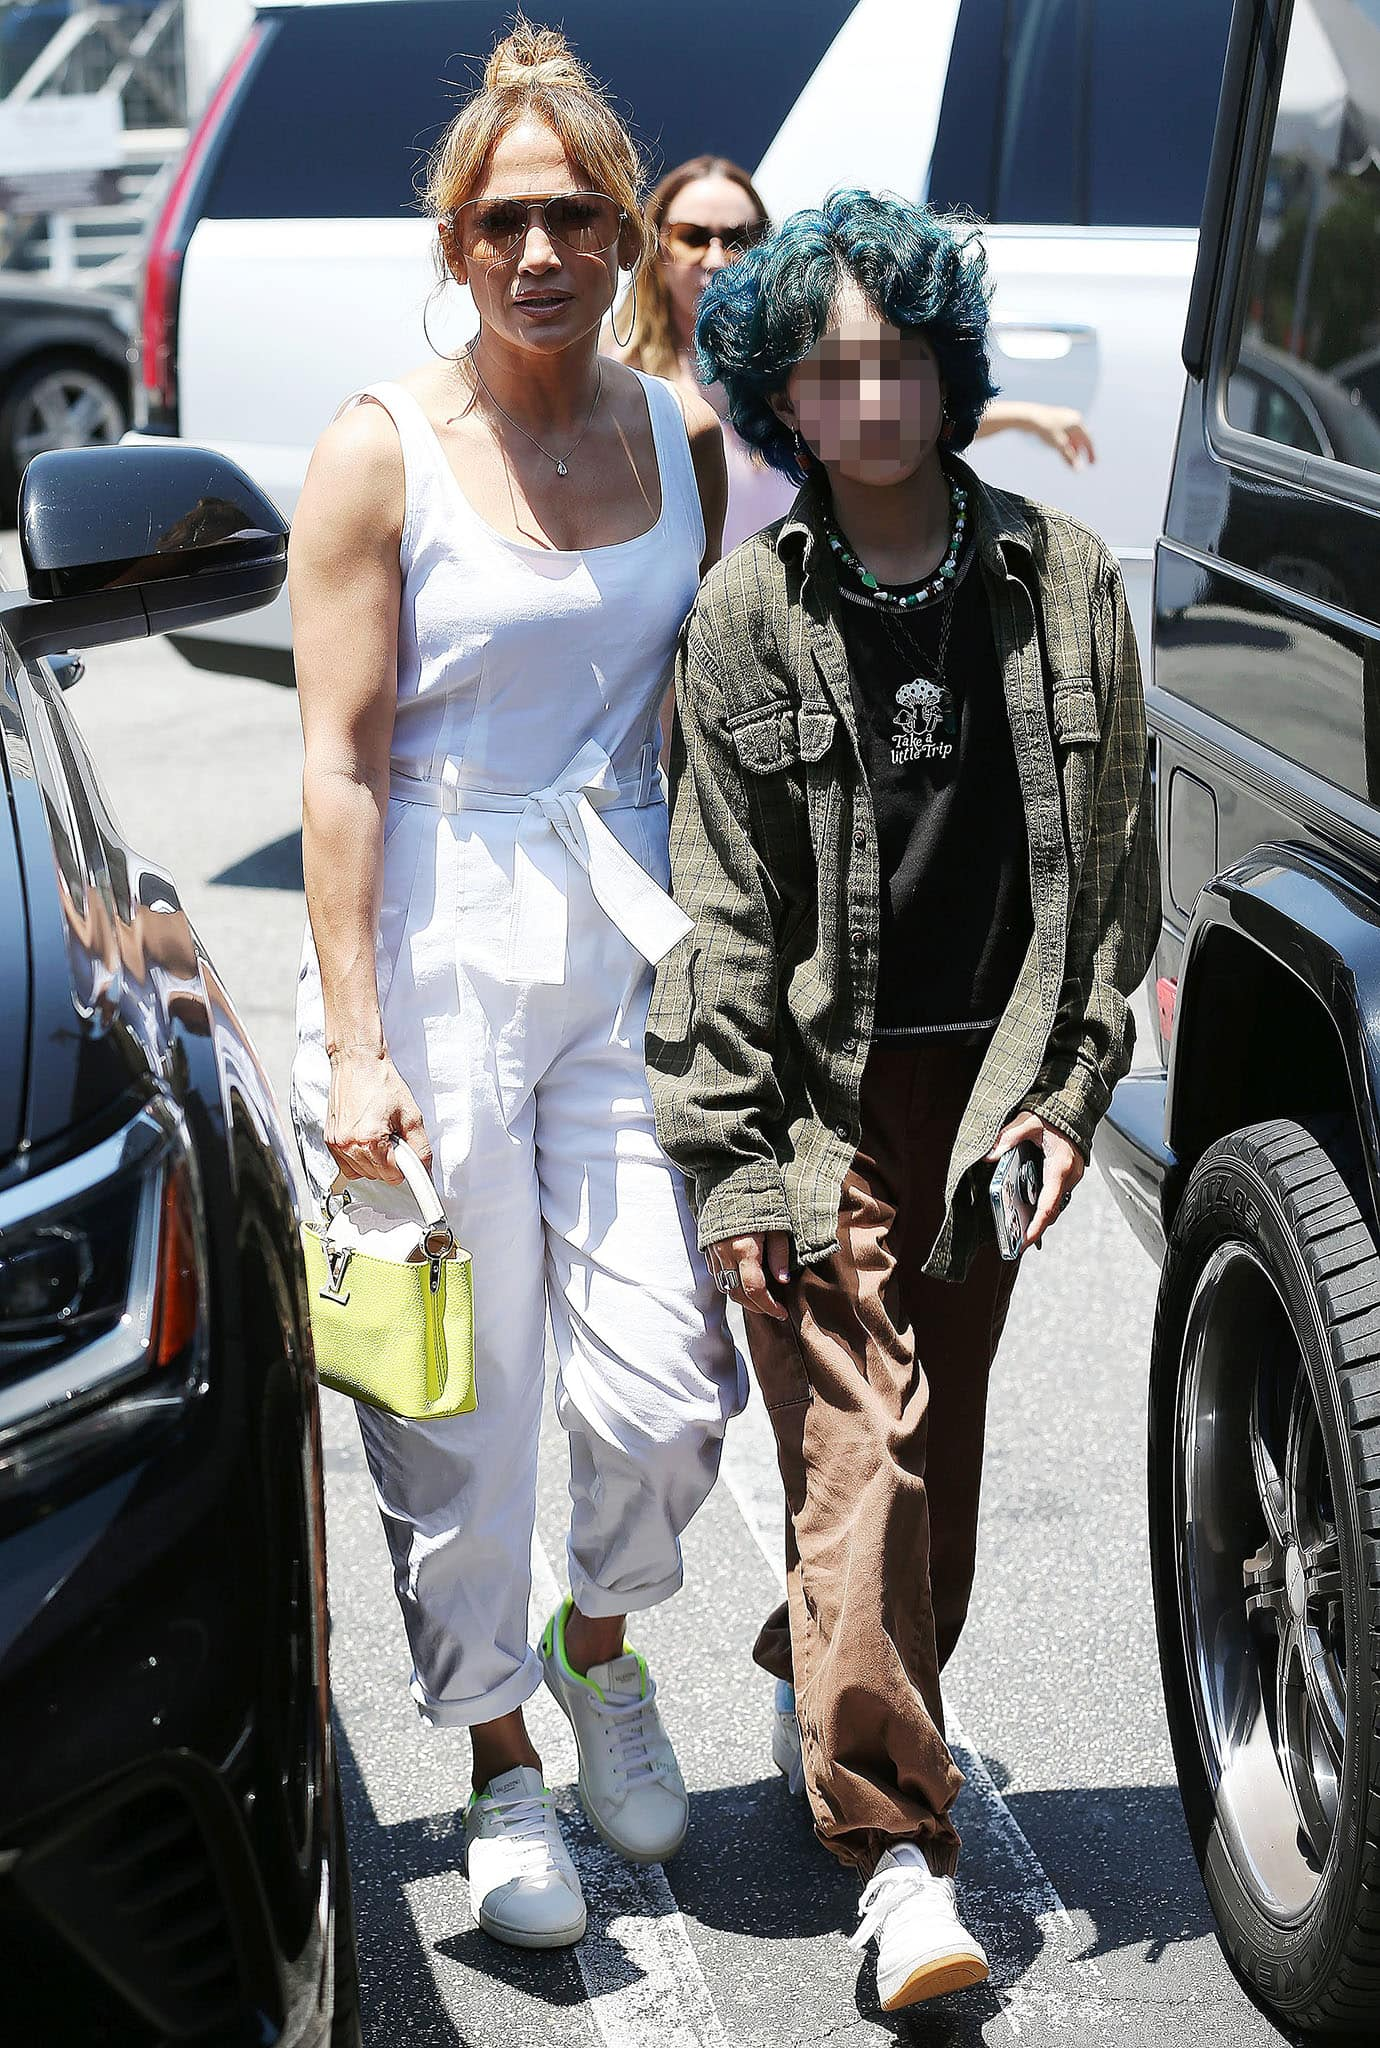 Jennifer Lopez's daughter, Emme, rocks curly green hair with oversized plaid shirt and baggy pants